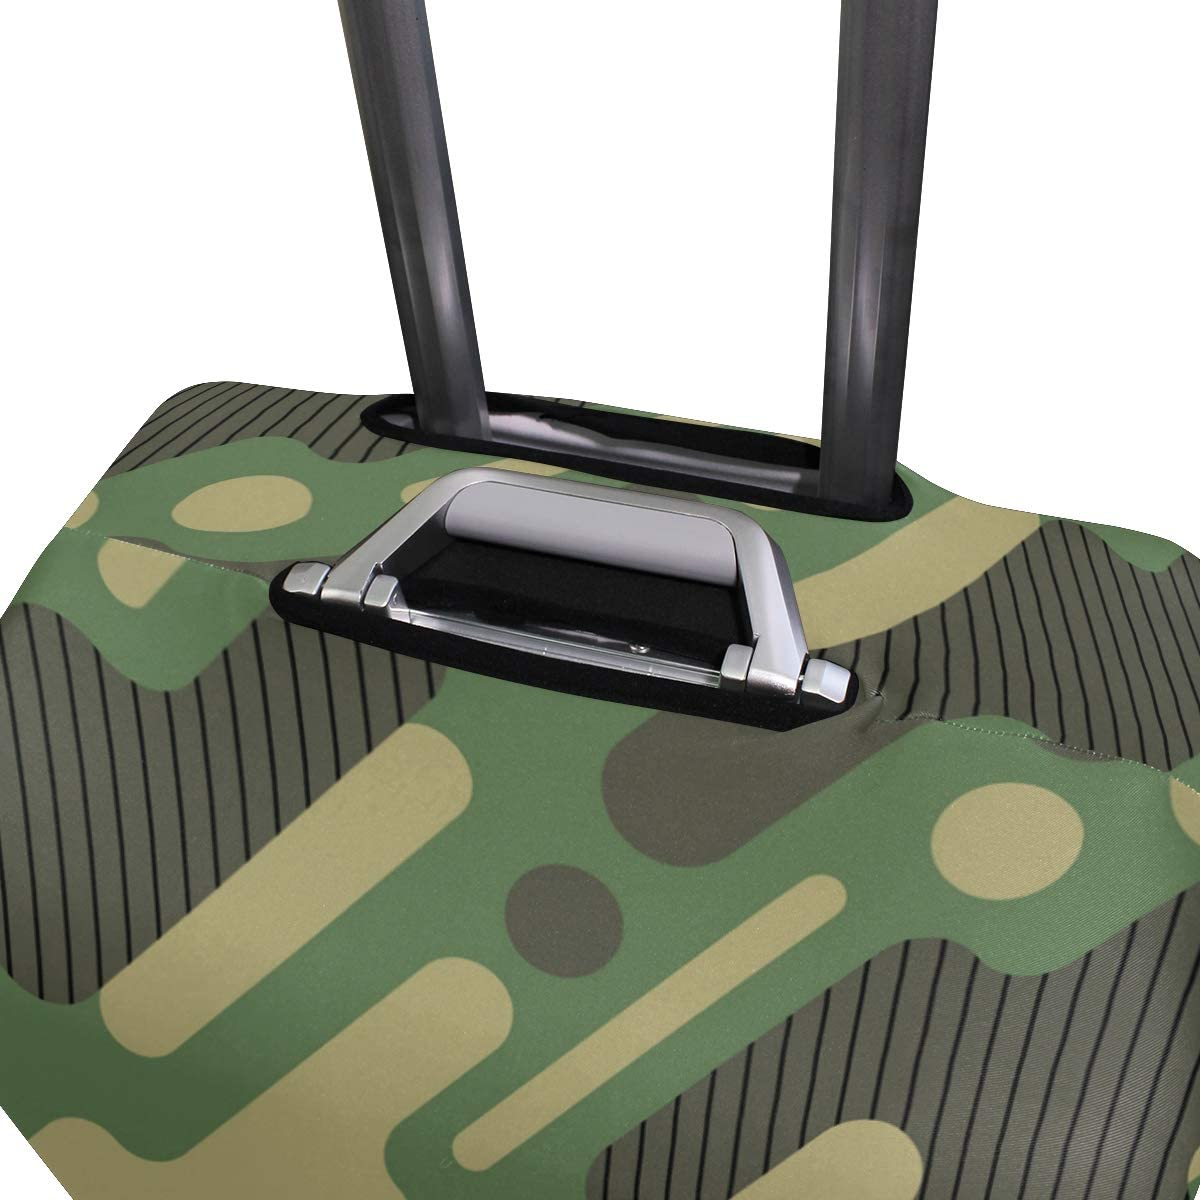 Blue Viper Strip Camouflage Luggage Protective Cover Suitcase Protector Fits 26-28 Inch Luggage